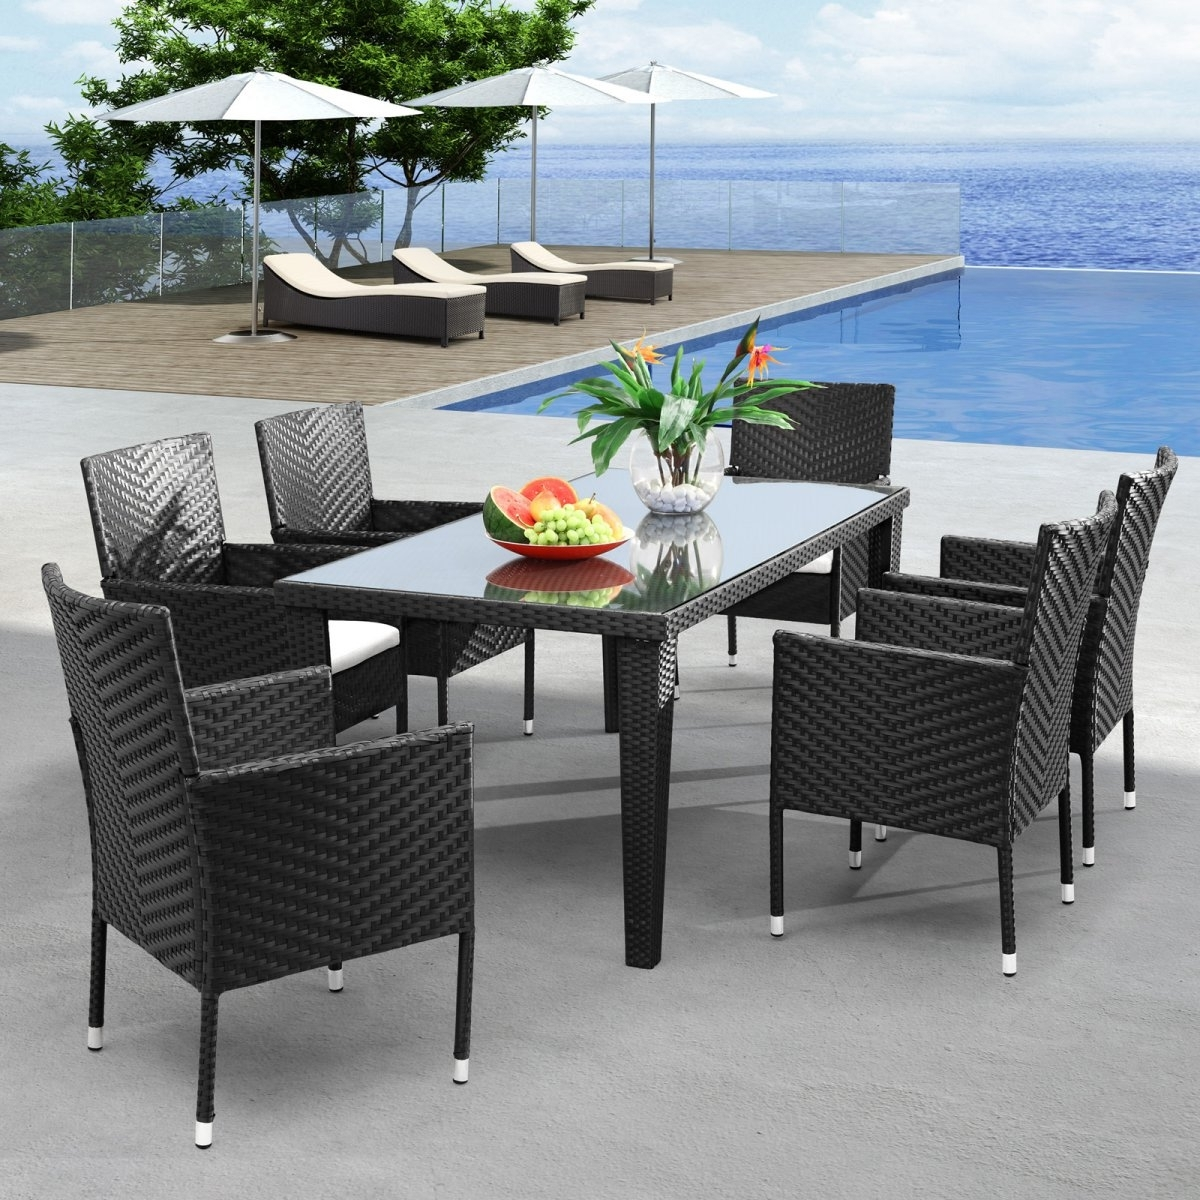 2017 Wicker And Glass Dining Tables Intended For Gray Plastic Wicker Outdoor Dining Room Set With Glass Dining Table (View 12 of 25)